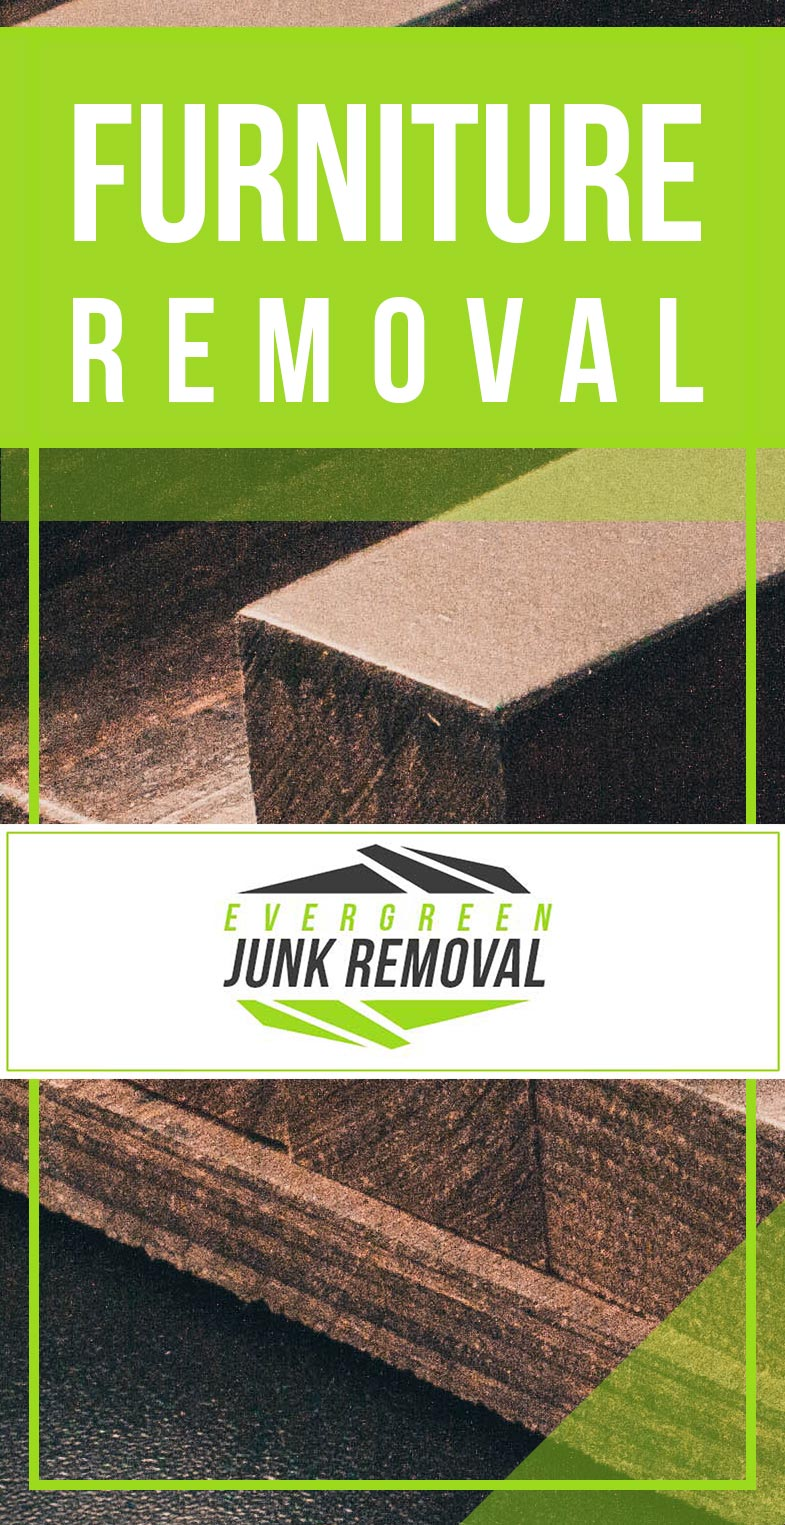 Bellevue Furniture Removal